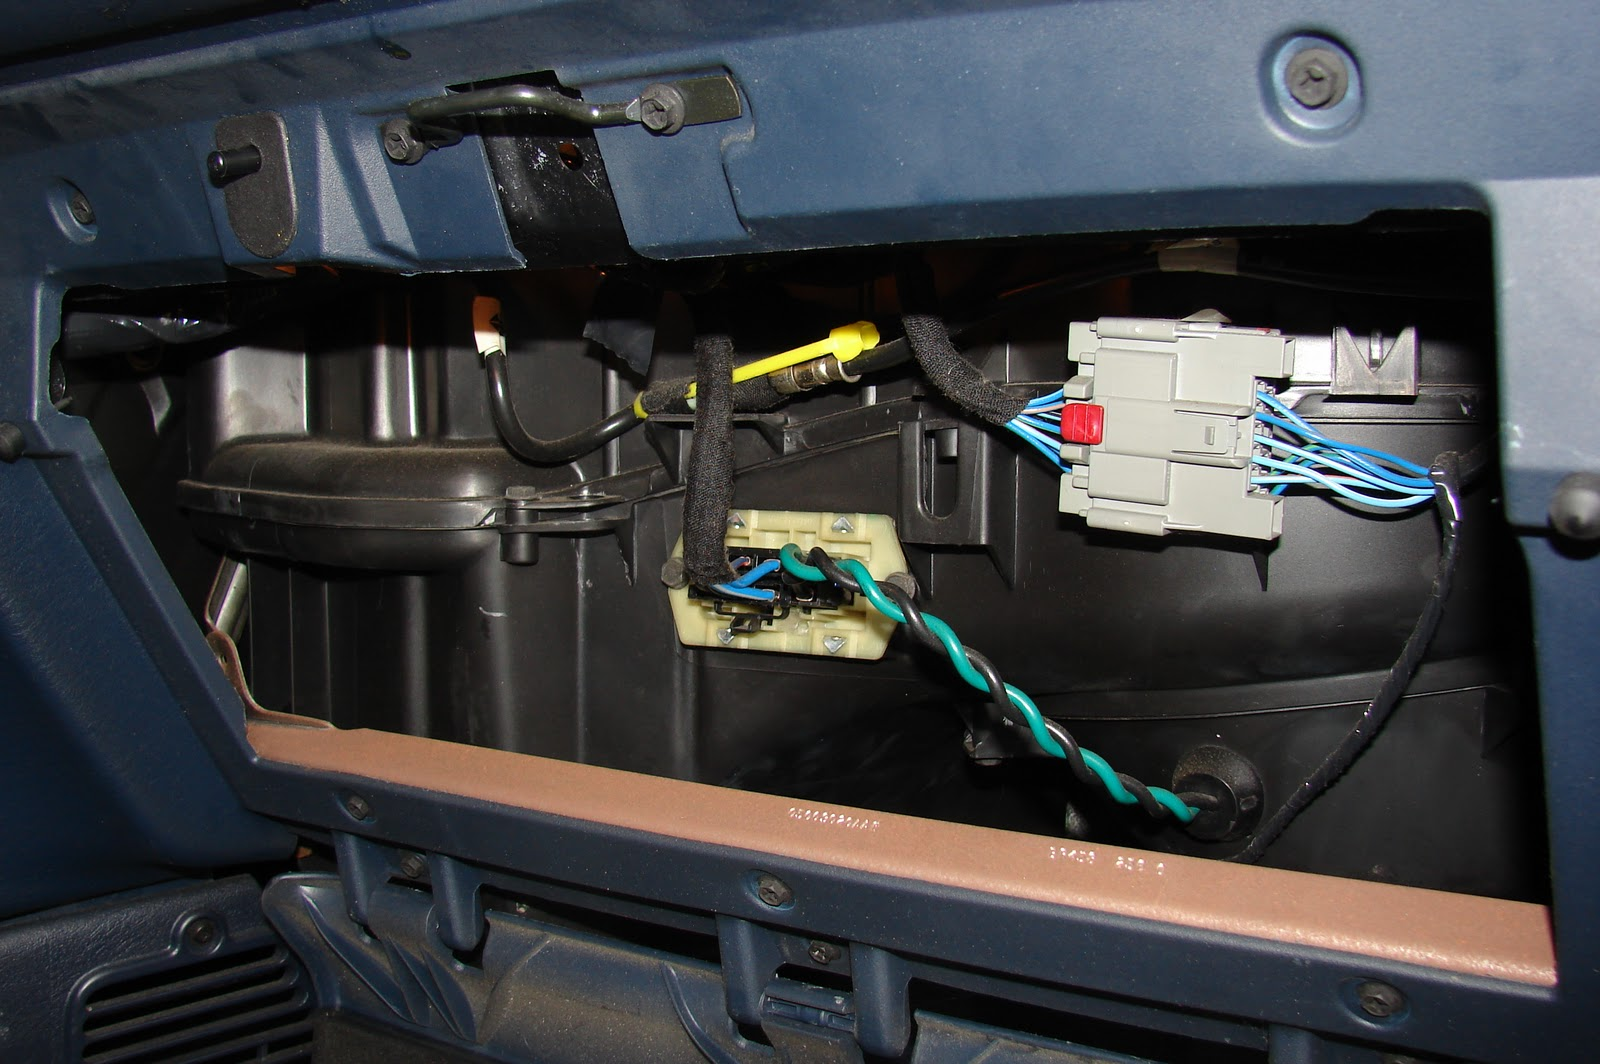 2001 Dodge Dakota Fuse Box Location Wiring Library 2005 Volvo Engine Diagram Furthermore Caravan Rh Sellfie Co